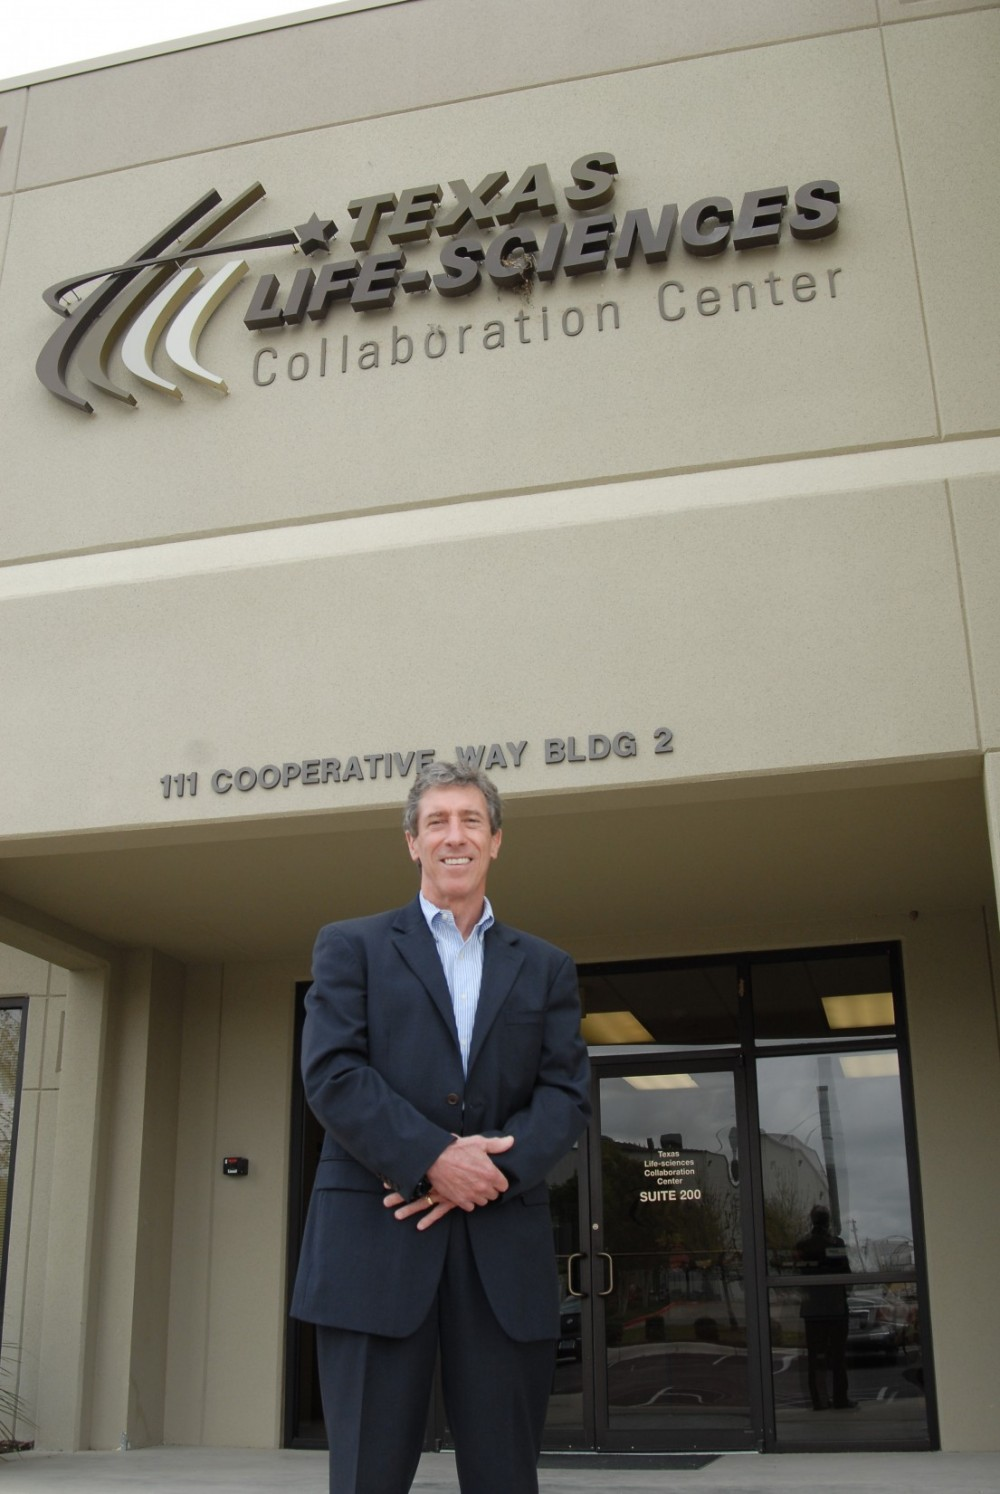 Southwestern graduate Michael Douglas has been named the new director of the Texas Life Sciences Collaboration Center.